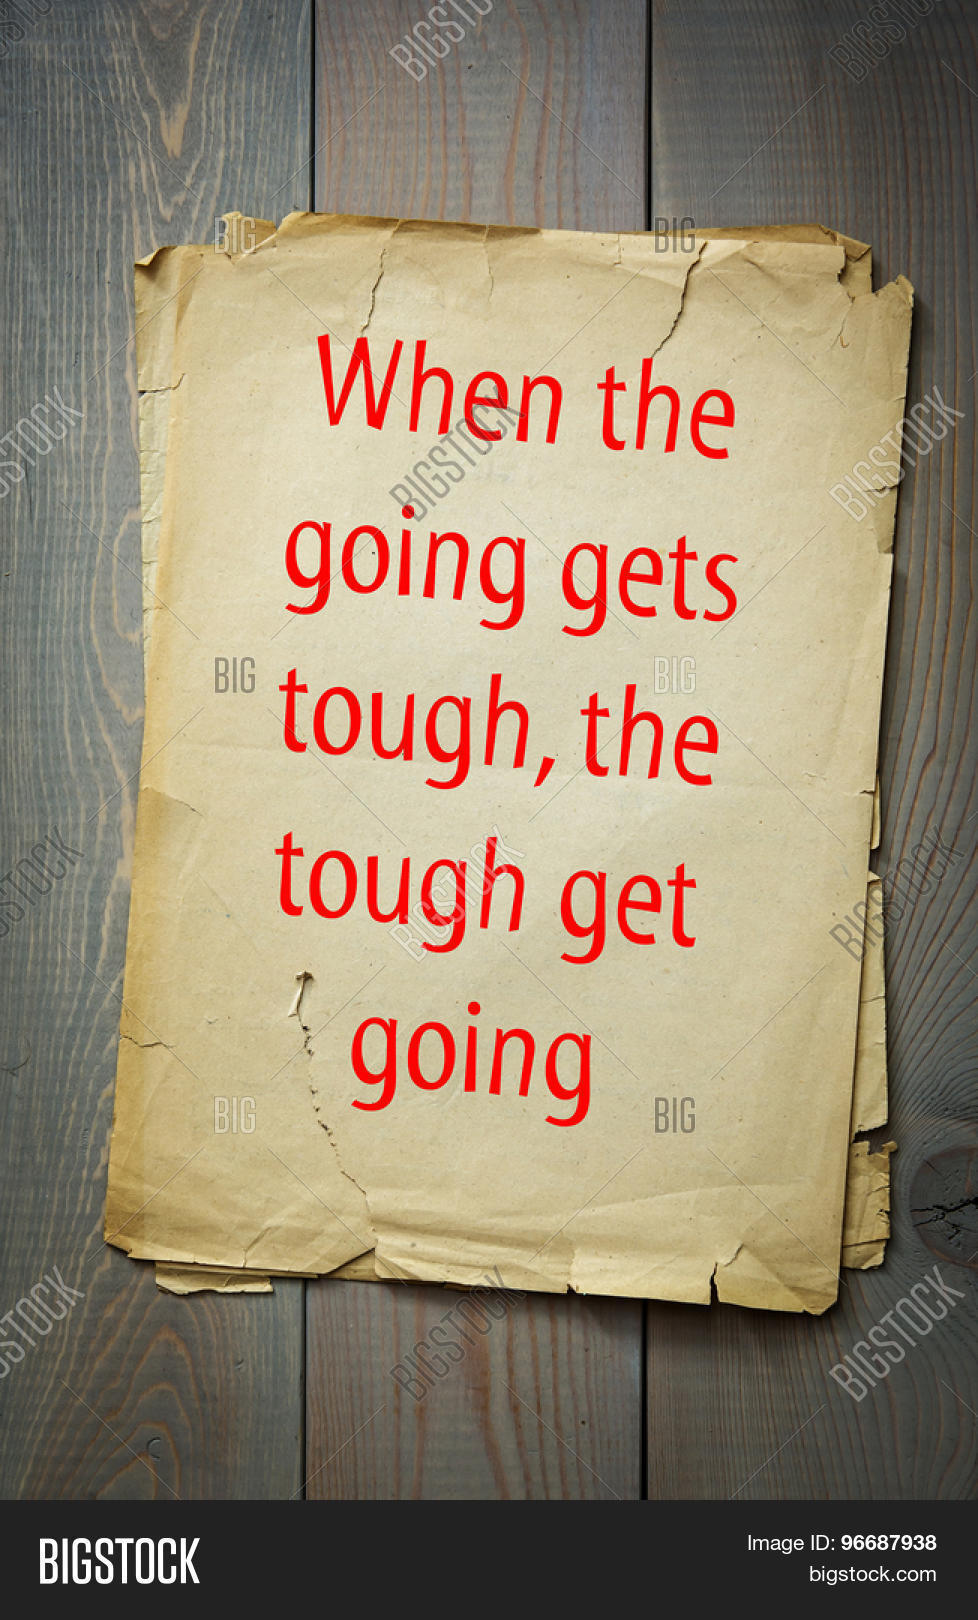 """when the going gets tough the tough gets going essay Nor an element of chance is involved the wise saying goes, """"when the going gets tough, the tough gets going """" survival will be extremely difficult for the african people in the global village, unless tangible steps, all-comprehensive projects are drawn up and implemented with speed and imagination, by responsible leaders and people the test."""